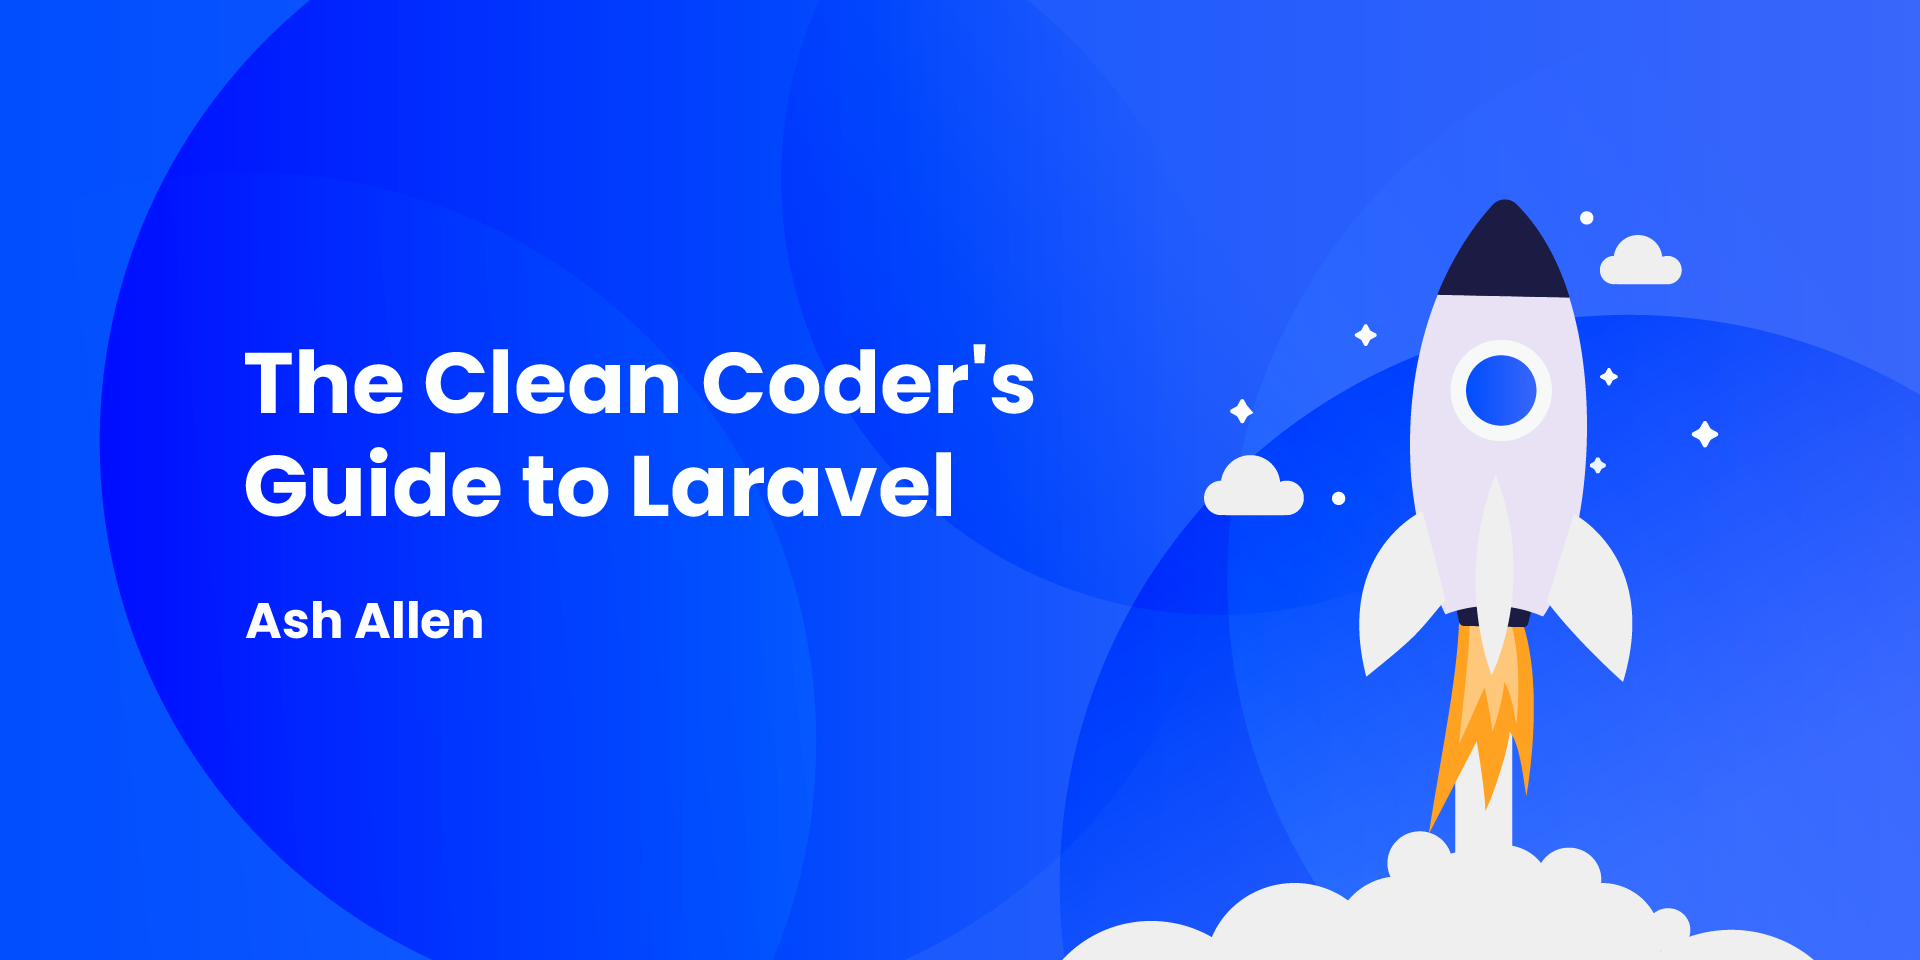 """Download your free copy of """"The Clean Coder's Guide to Laravel"""". The free 70-page PDF covers 6 different chapters with tips that you can use to write cleaner code in Laravel."""